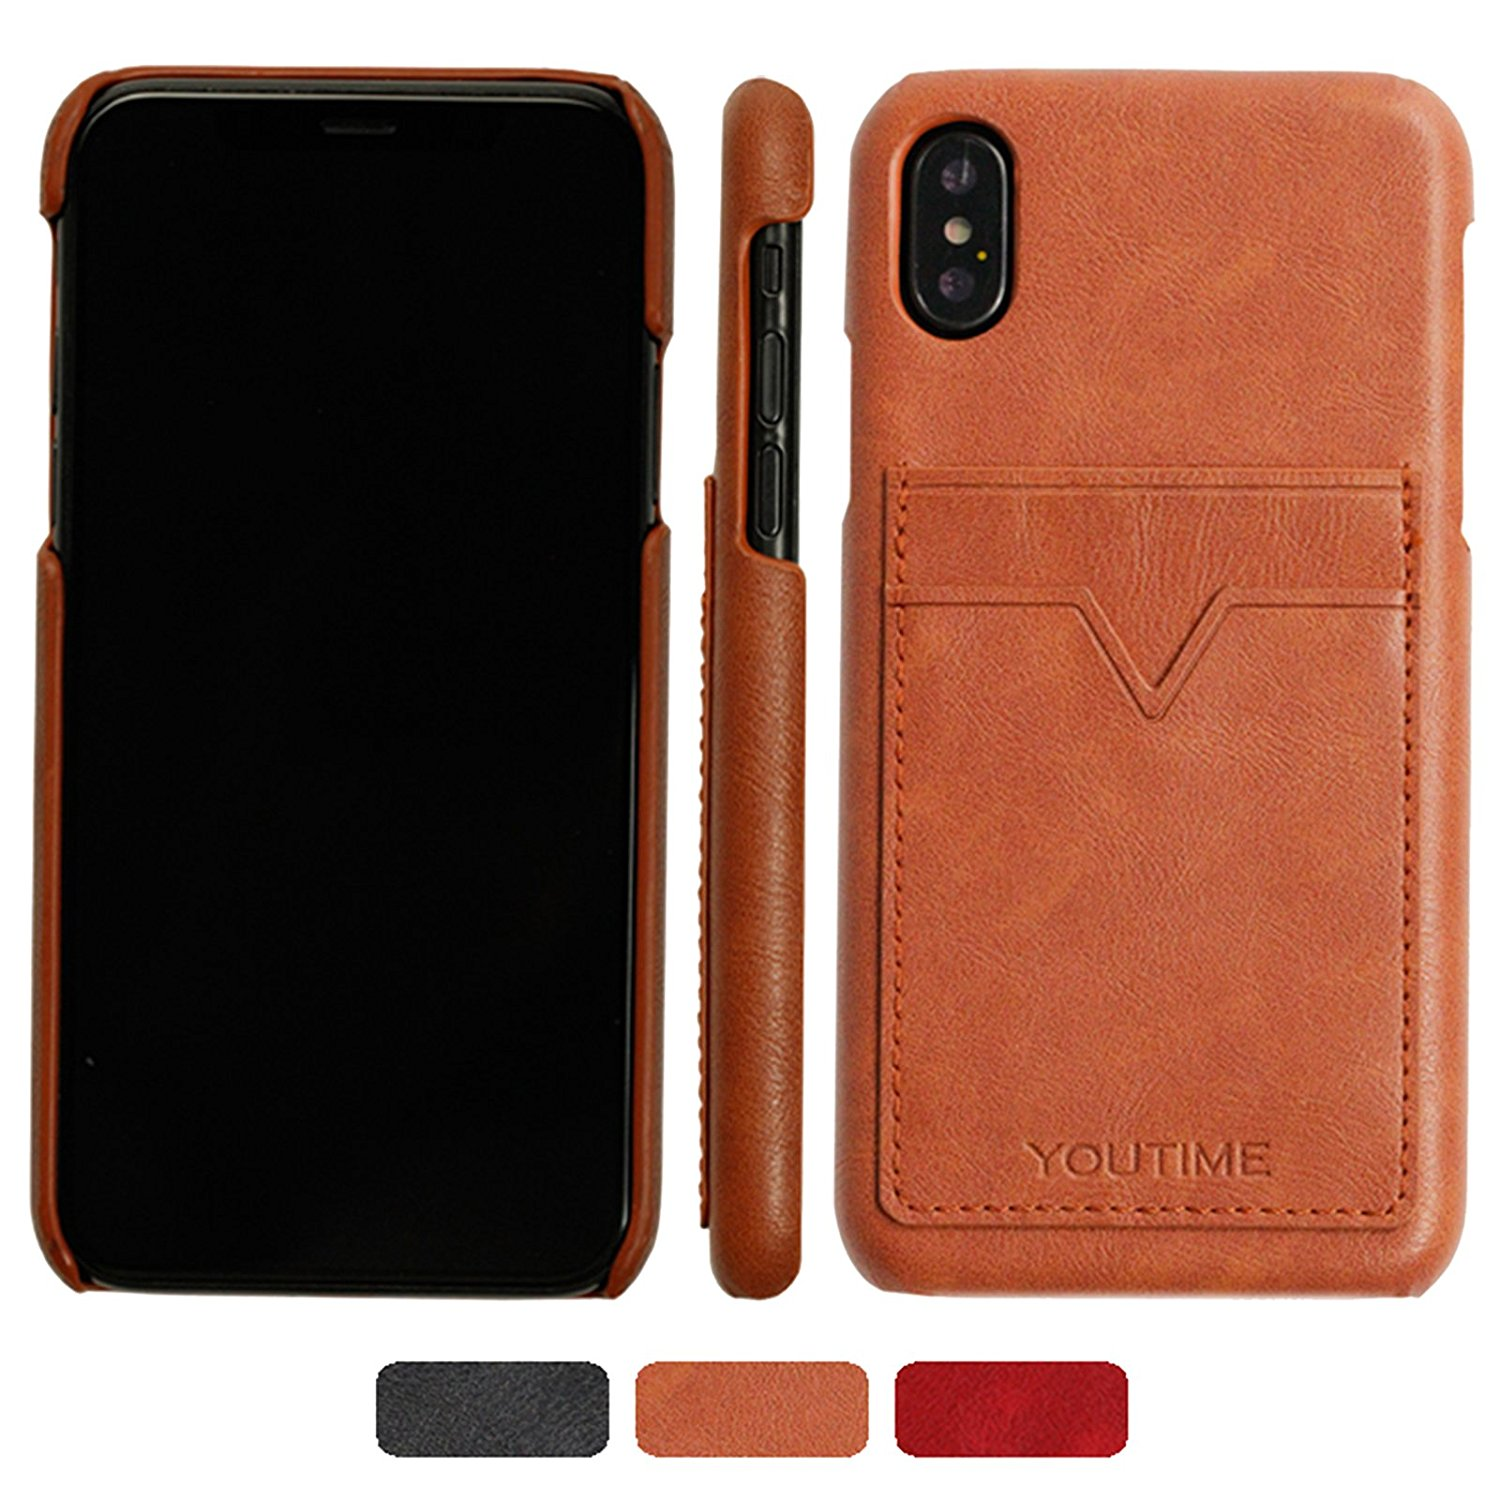 iPhone X cases 6 best leather phone soft luxury